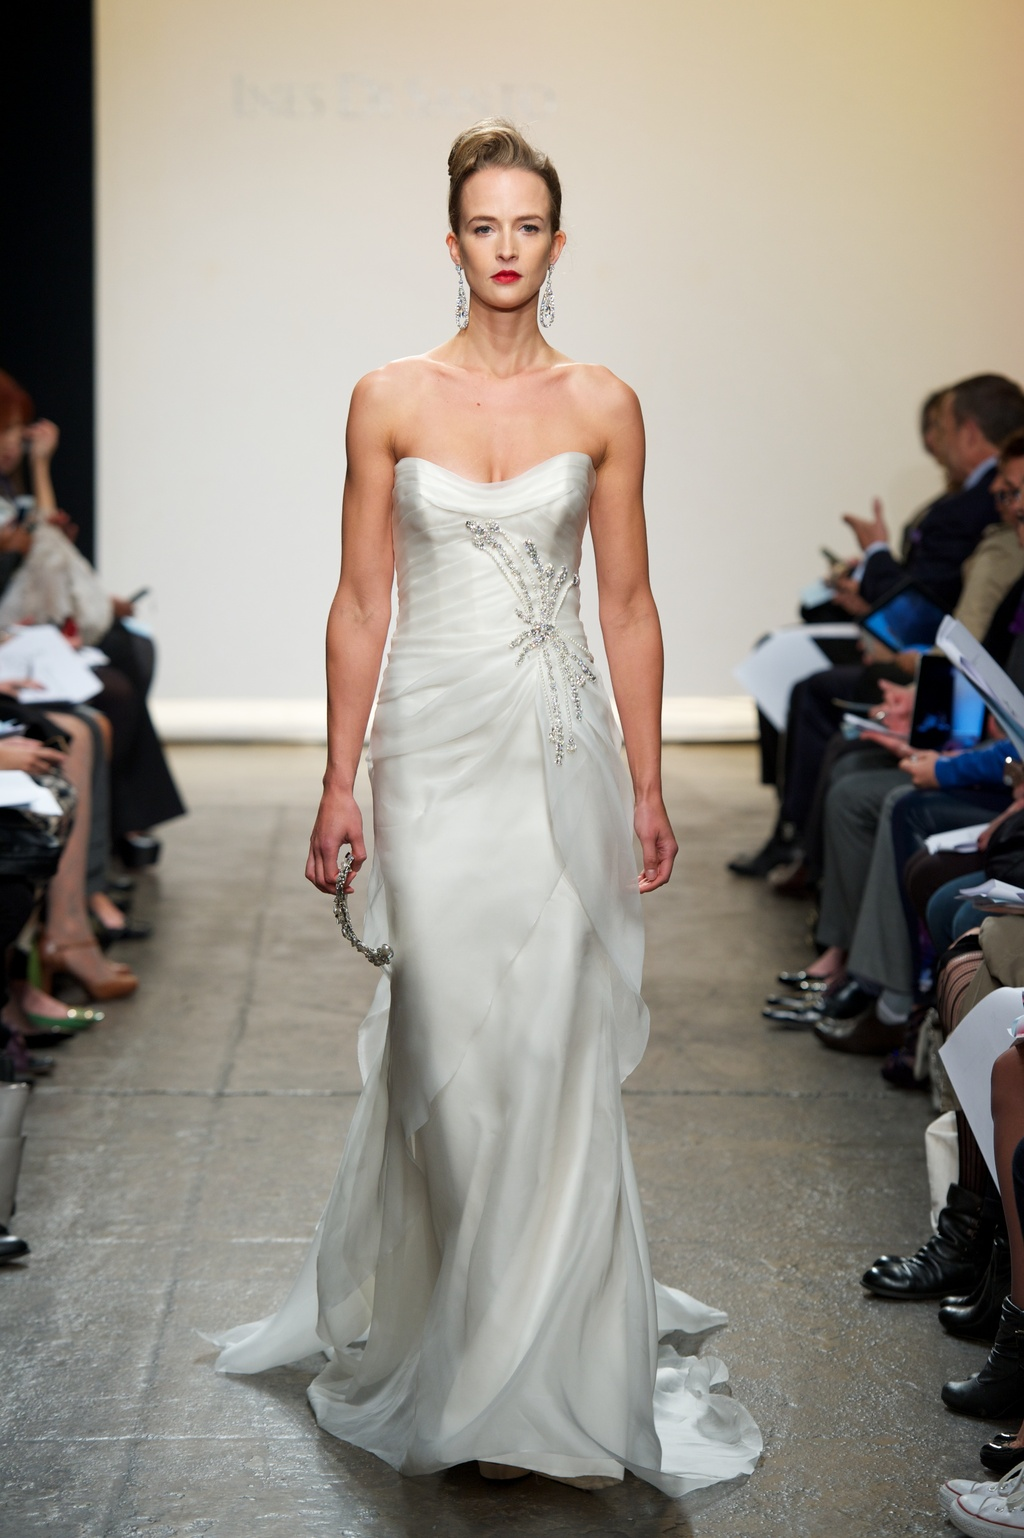 2013 Wedding Dress by Ines di Santo Dama